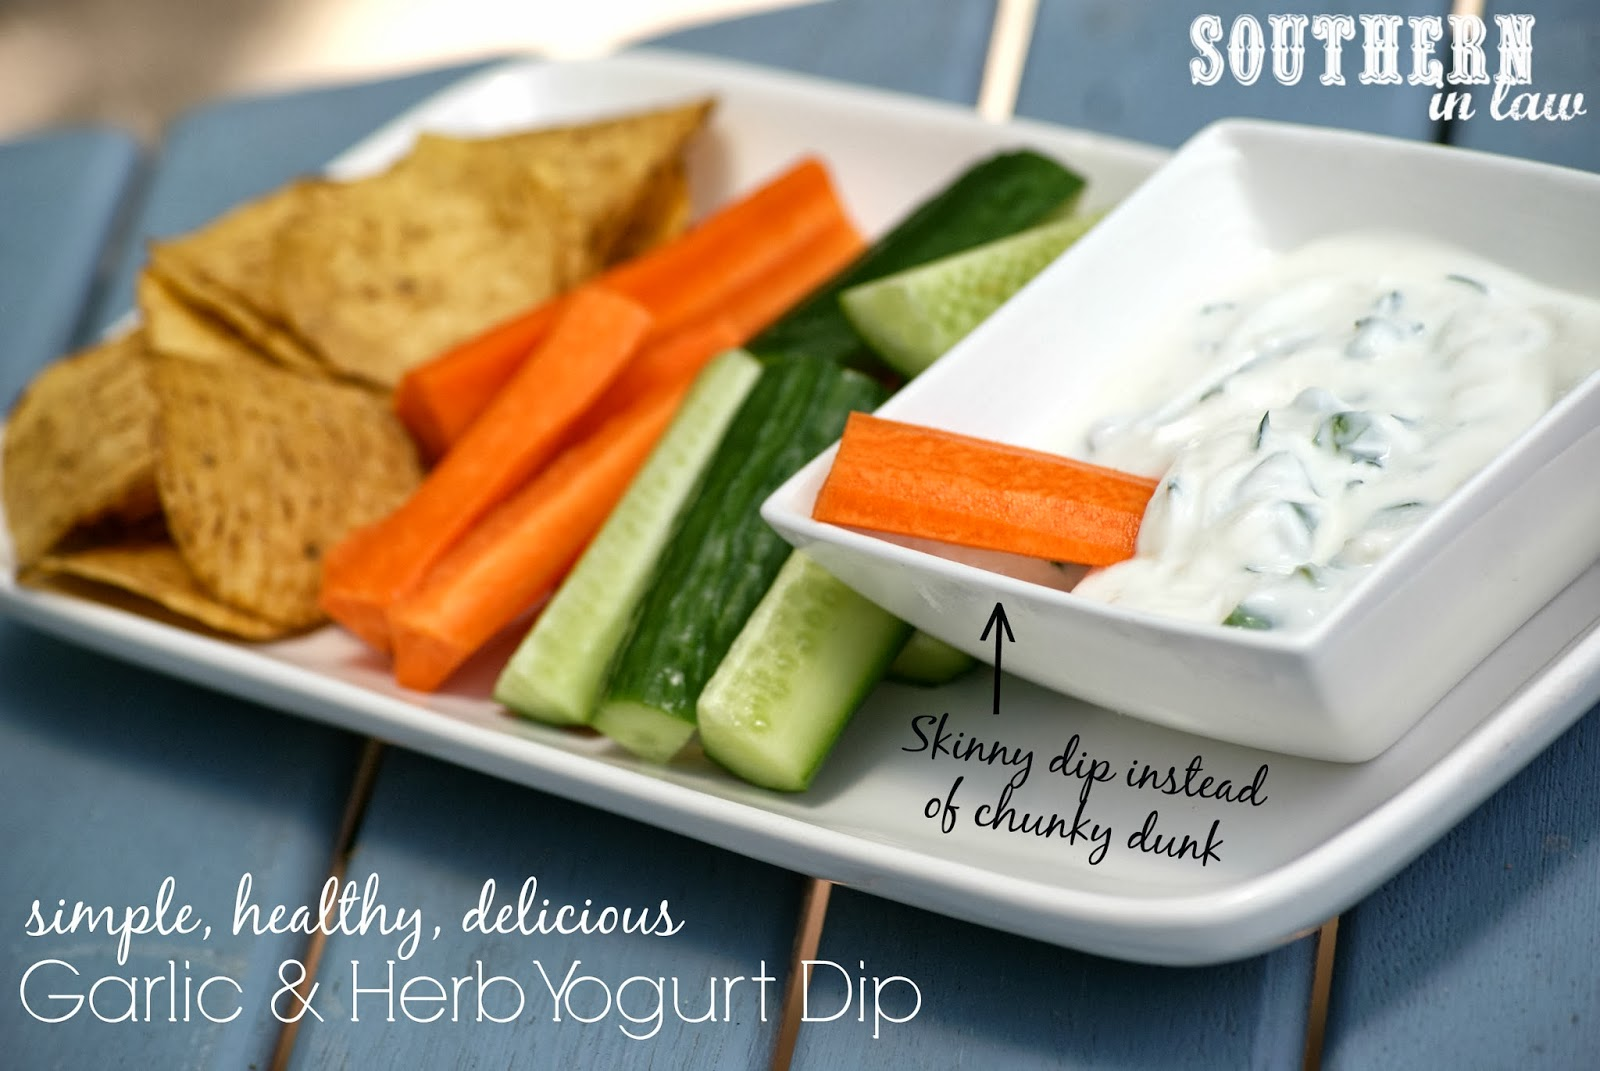 Healthy Garlic and Herb Yogurt Dip with Corn Chips and Vegetable Crudites - Healthy, Gluten Free, Low Fat, Clean Eating Friendly, Sugar Free